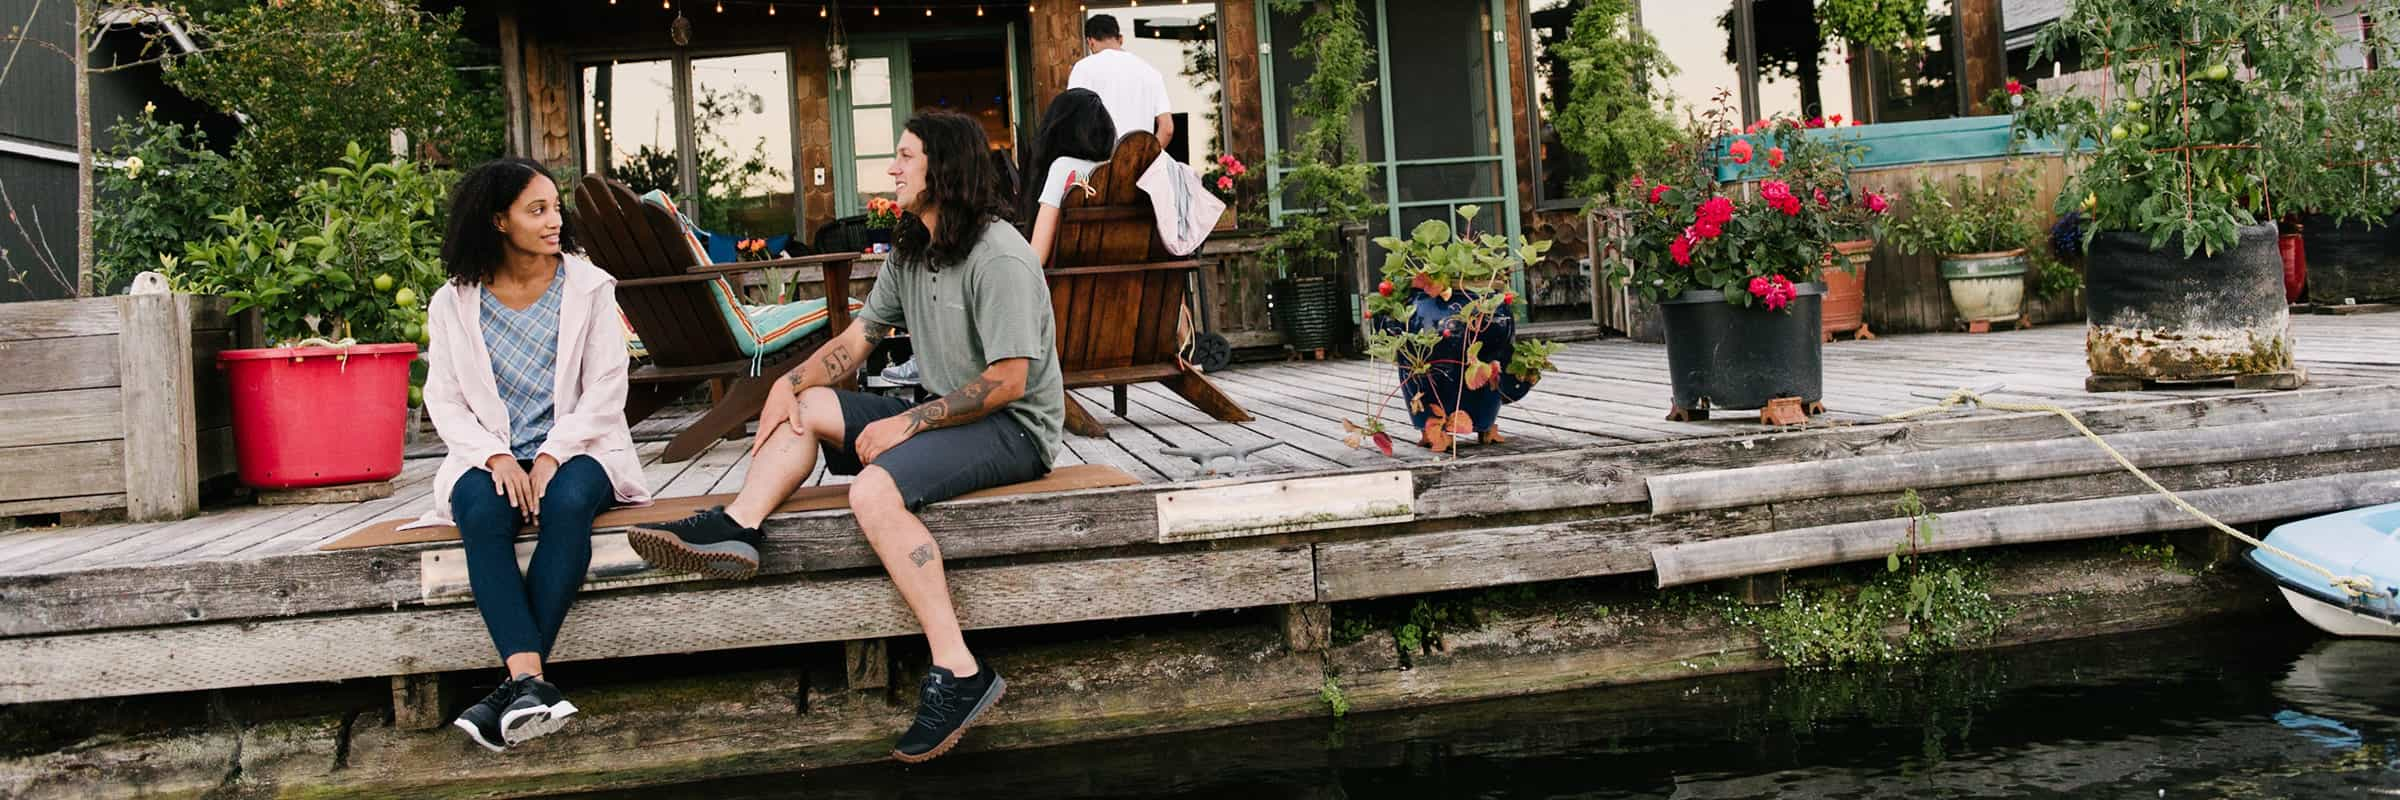 Columbia Sportswear Travel Outfits: Packable Sun & Rain Apparel for Summer